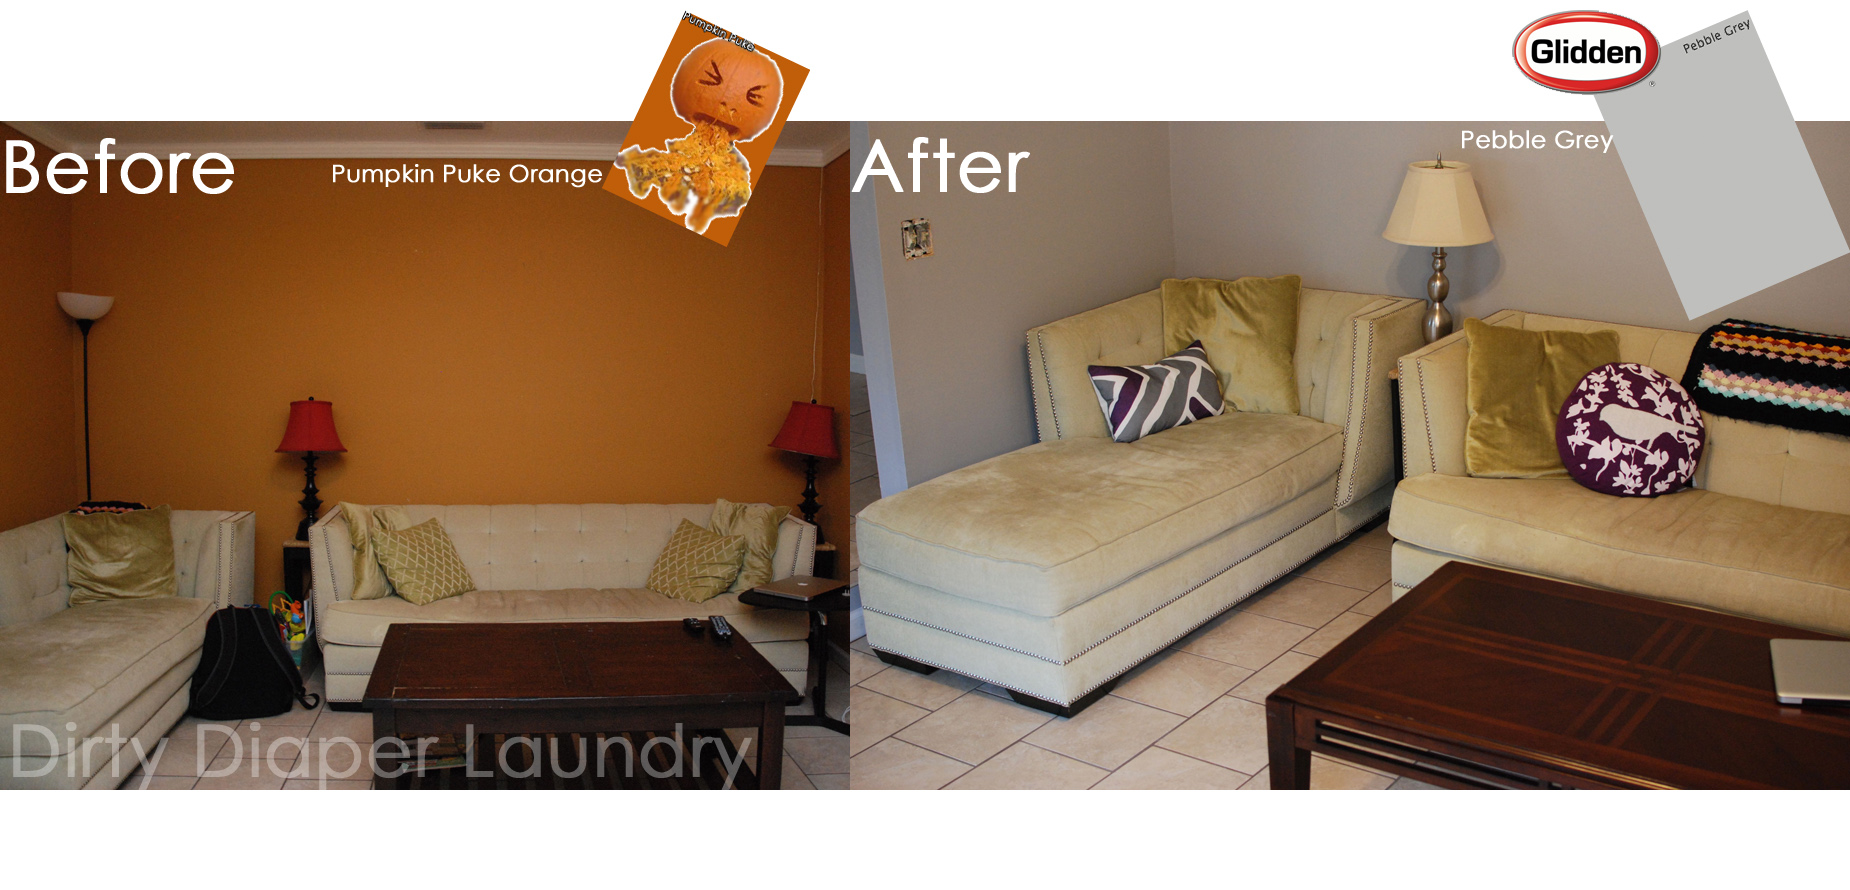 Before and After:  Pumpkin Puke Orange to Pebble Grey